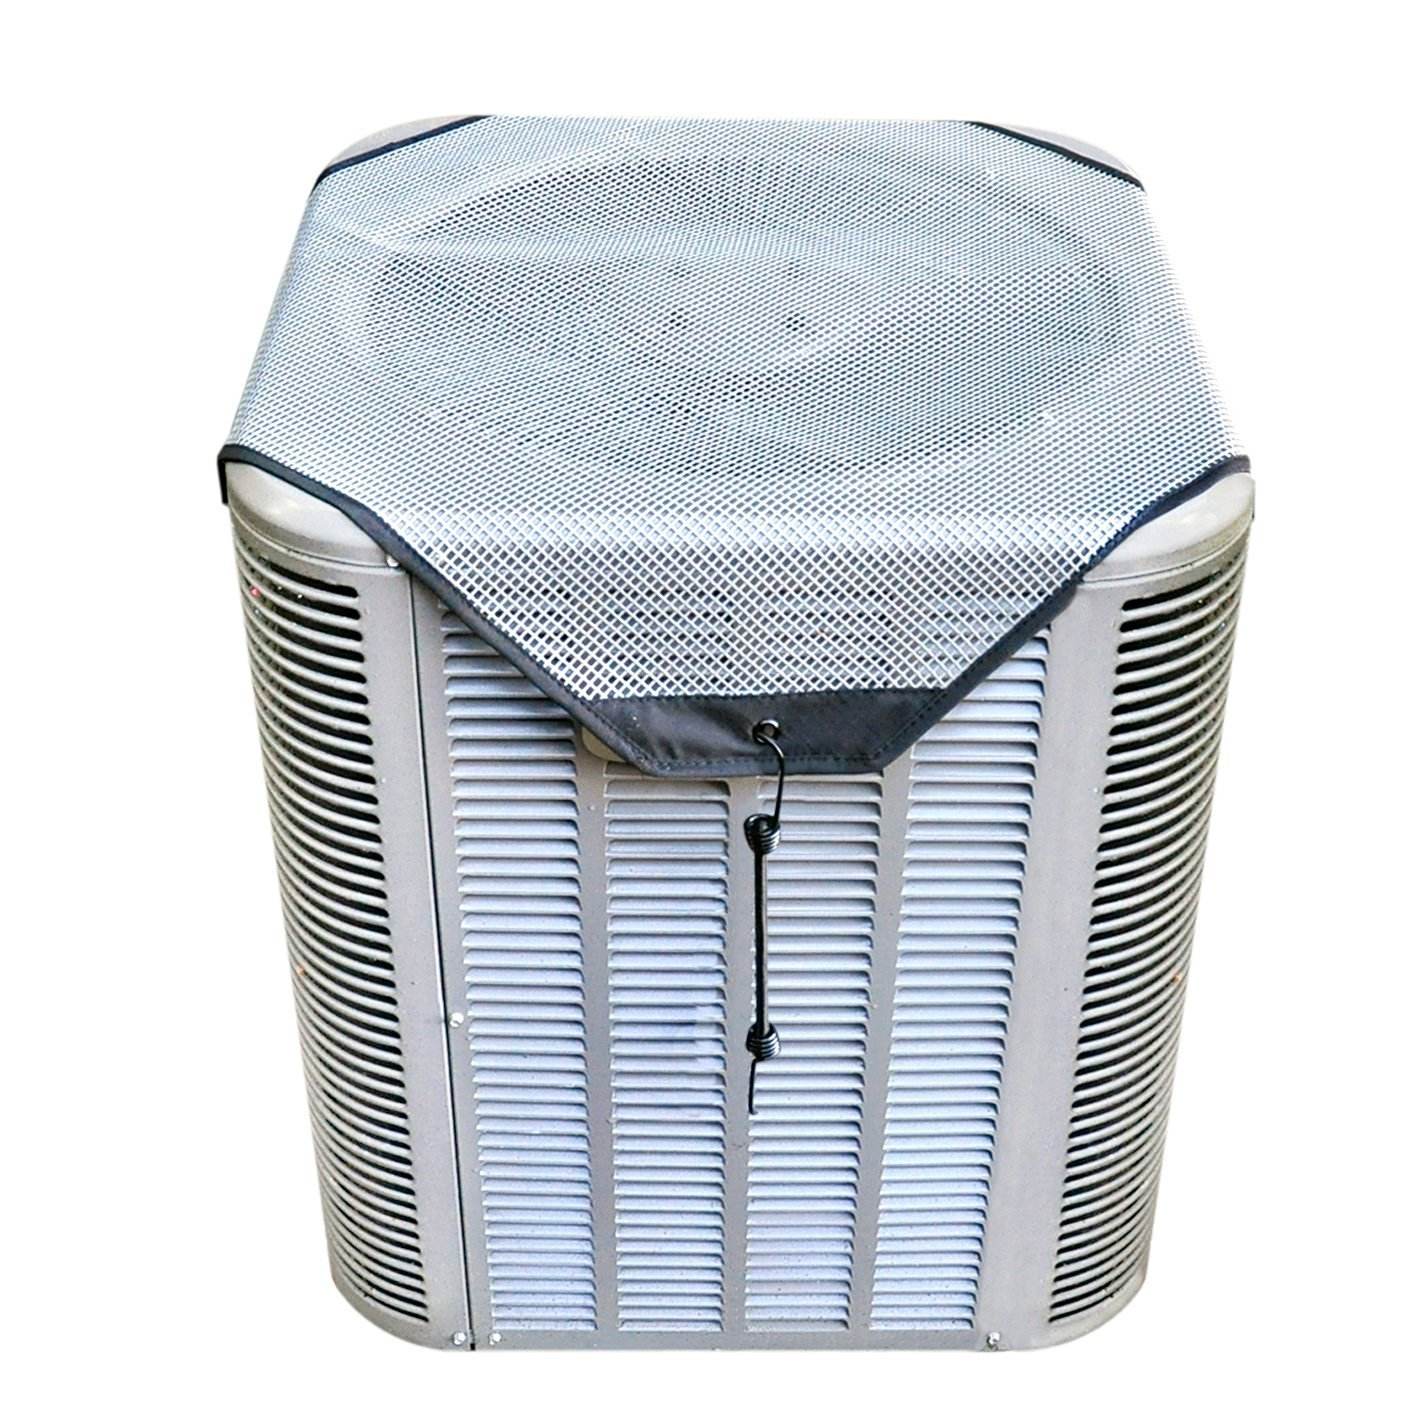 Sturdy Covers AC Defender - All Season Universal Mesh AC Cover for Central Units